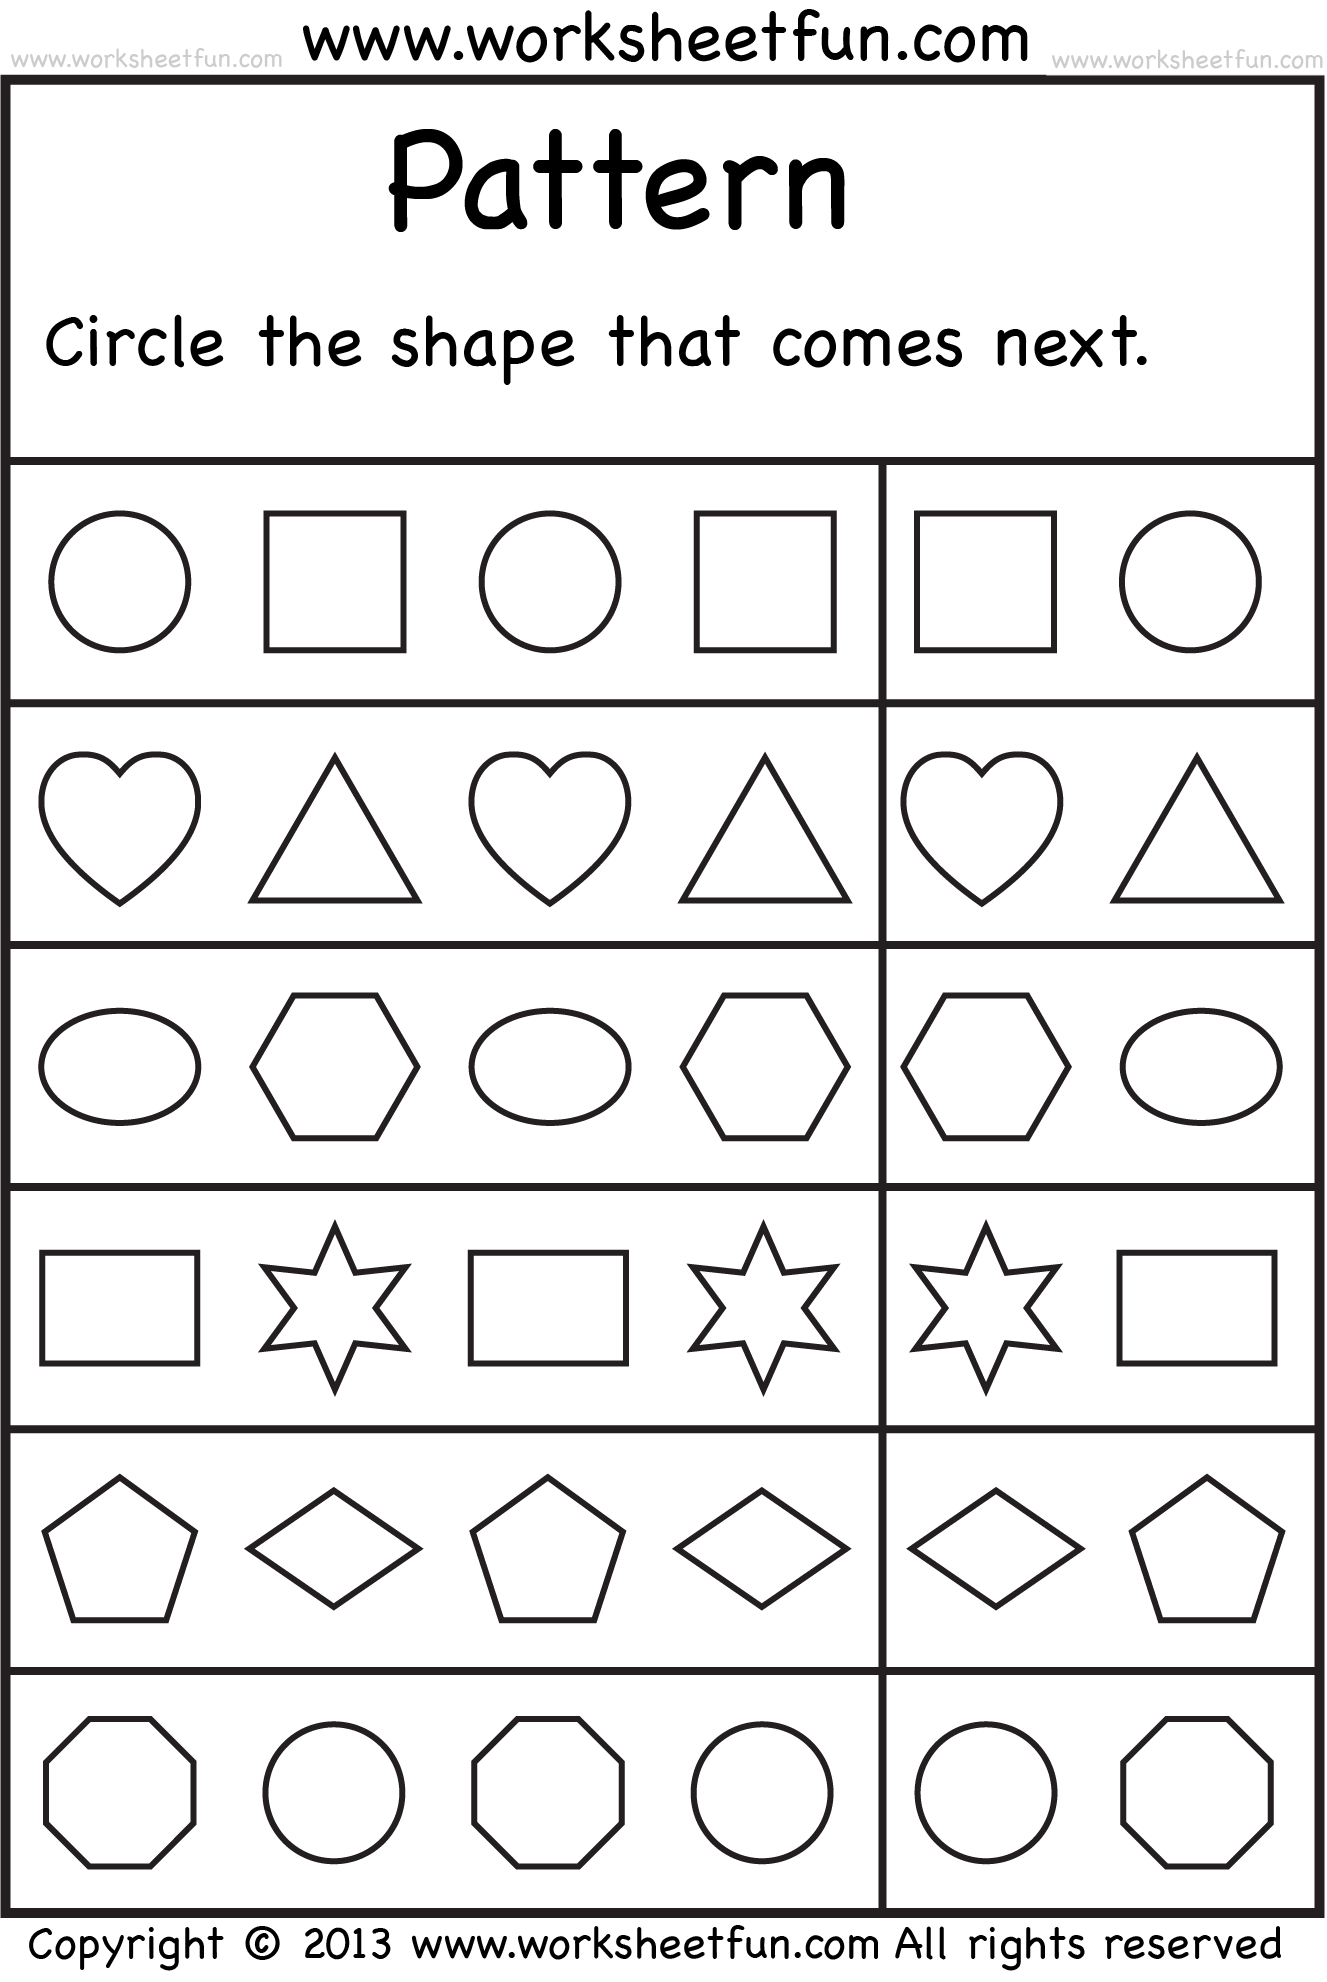 Weirdmailus  Wonderful  Images About School Worksheets On Pinterest  Number Words  With Extraordinary  Images About School Worksheets On Pinterest  Number Words Alphabet Worksheets And Free Printable Kindergarten Worksheets With Awesome Grade  Area And Perimeter Worksheets Also Able And Ible Worksheets In Addition Excel Combining Worksheets And Simultaneous Equations Word Problems Worksheet As Well As Present Progressive Tense Worksheet Additionally Rd Grade Punctuation And Capitalization Worksheets From Pinterestcom With Weirdmailus  Extraordinary  Images About School Worksheets On Pinterest  Number Words  With Awesome  Images About School Worksheets On Pinterest  Number Words Alphabet Worksheets And Free Printable Kindergarten Worksheets And Wonderful Grade  Area And Perimeter Worksheets Also Able And Ible Worksheets In Addition Excel Combining Worksheets From Pinterestcom